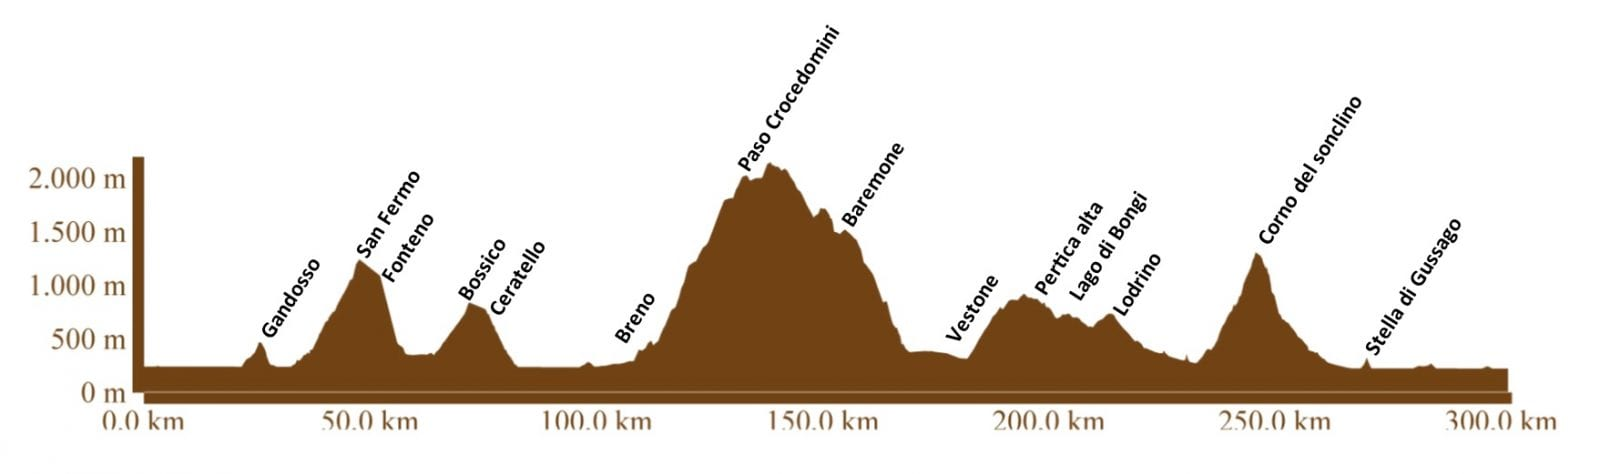 Jeroboam 300 2017 Route Profile